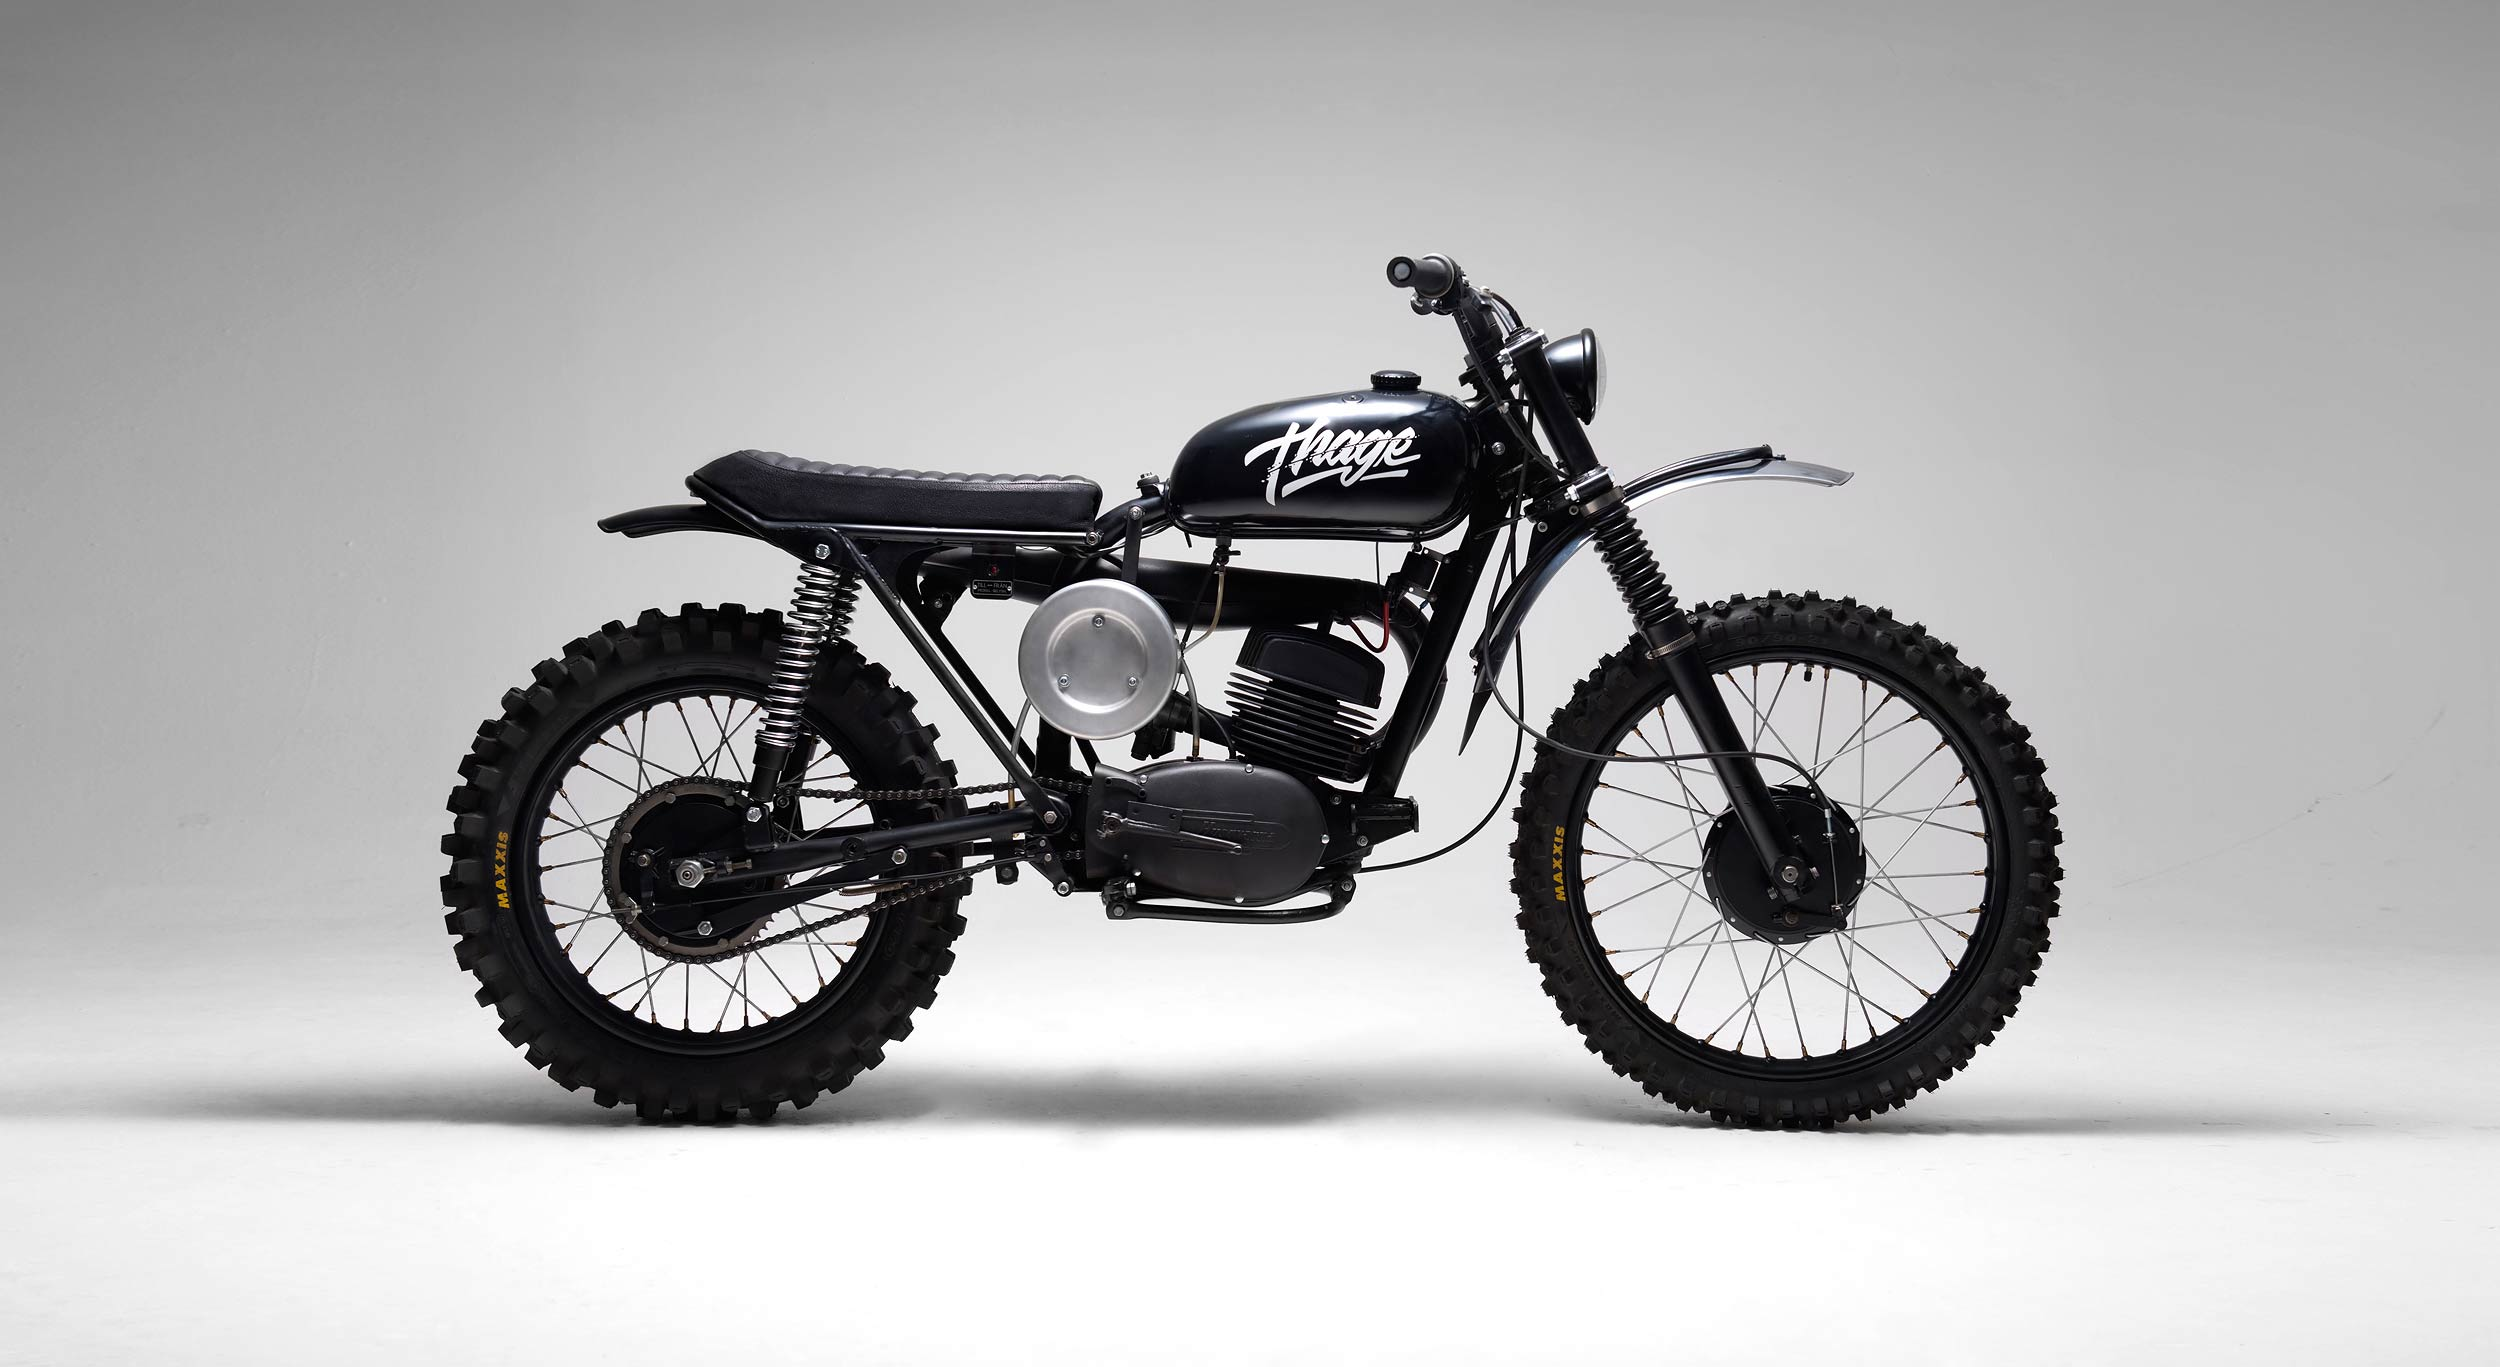 The Husqvarna 256 Thage Motorcycle